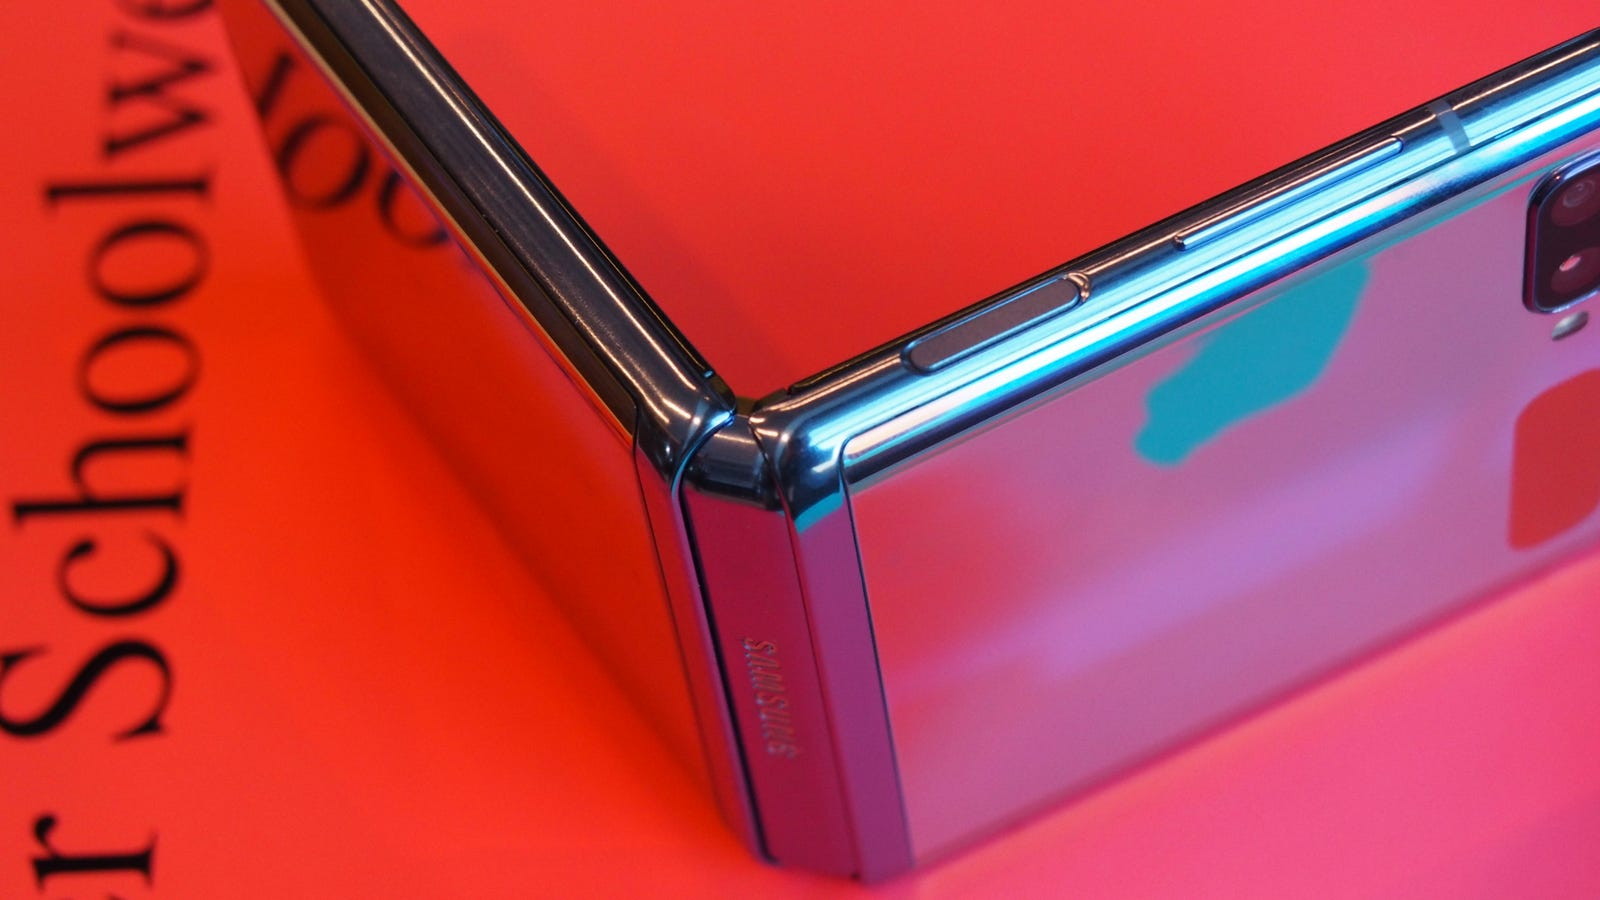 Illustration for article titled Samsungs Folding Phone Is the Cheapest One Yet, and the Least Flimsy